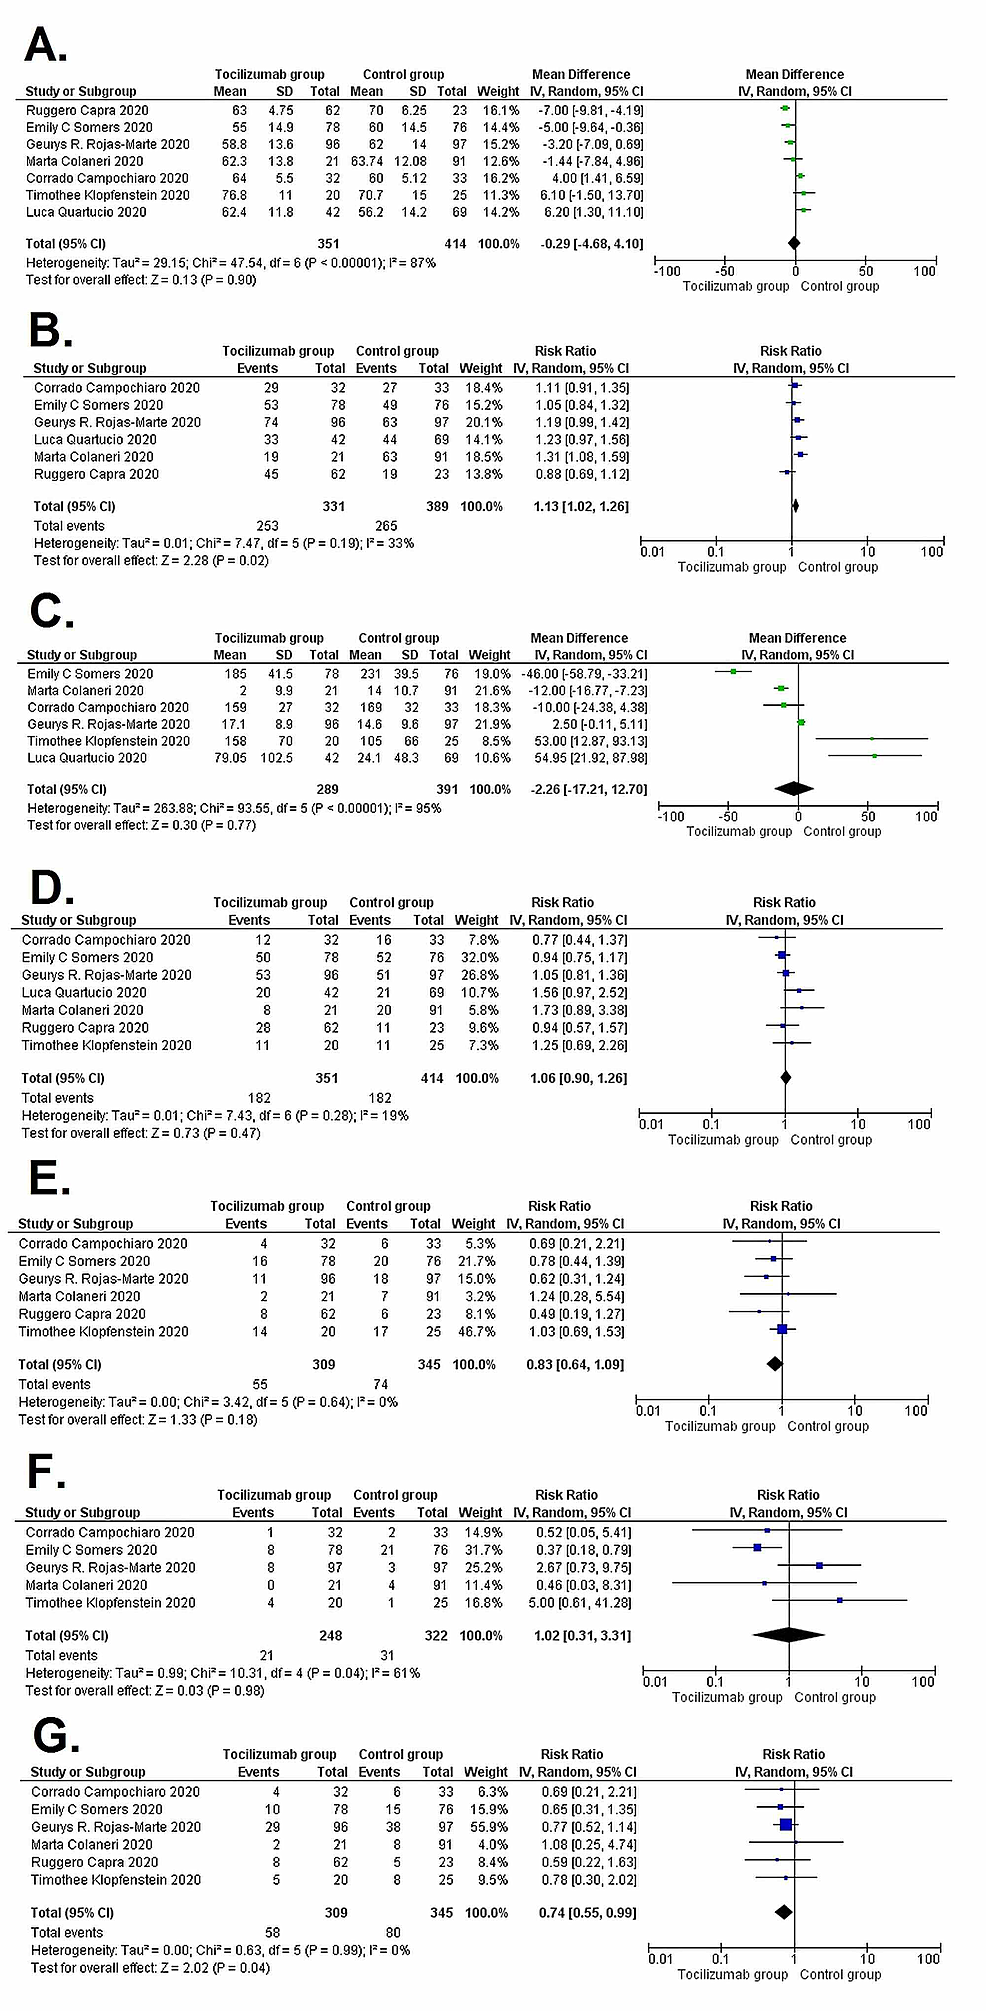 Forest-plots-showing-pooled-baseline-demographics-comparing-tocilizumab-group-and-control-group-patients